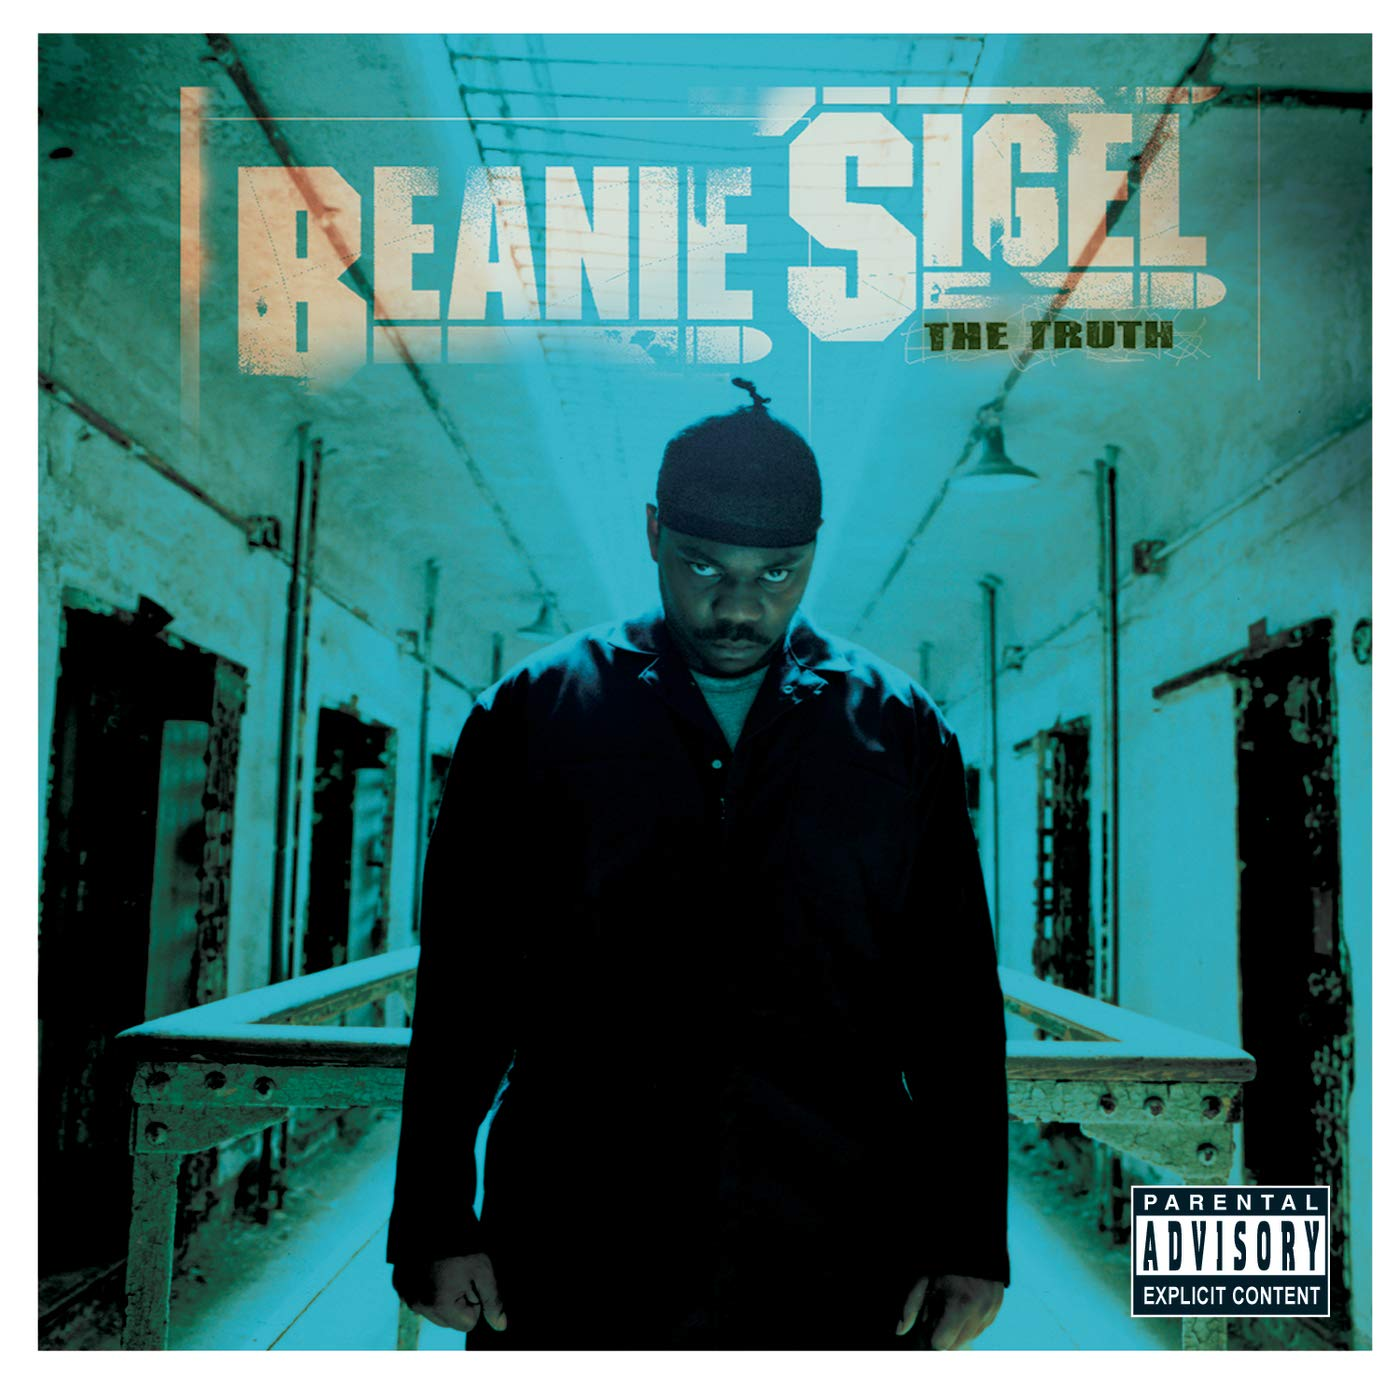 Beanie Sigel - The Truth (2000) [FLAC] Download